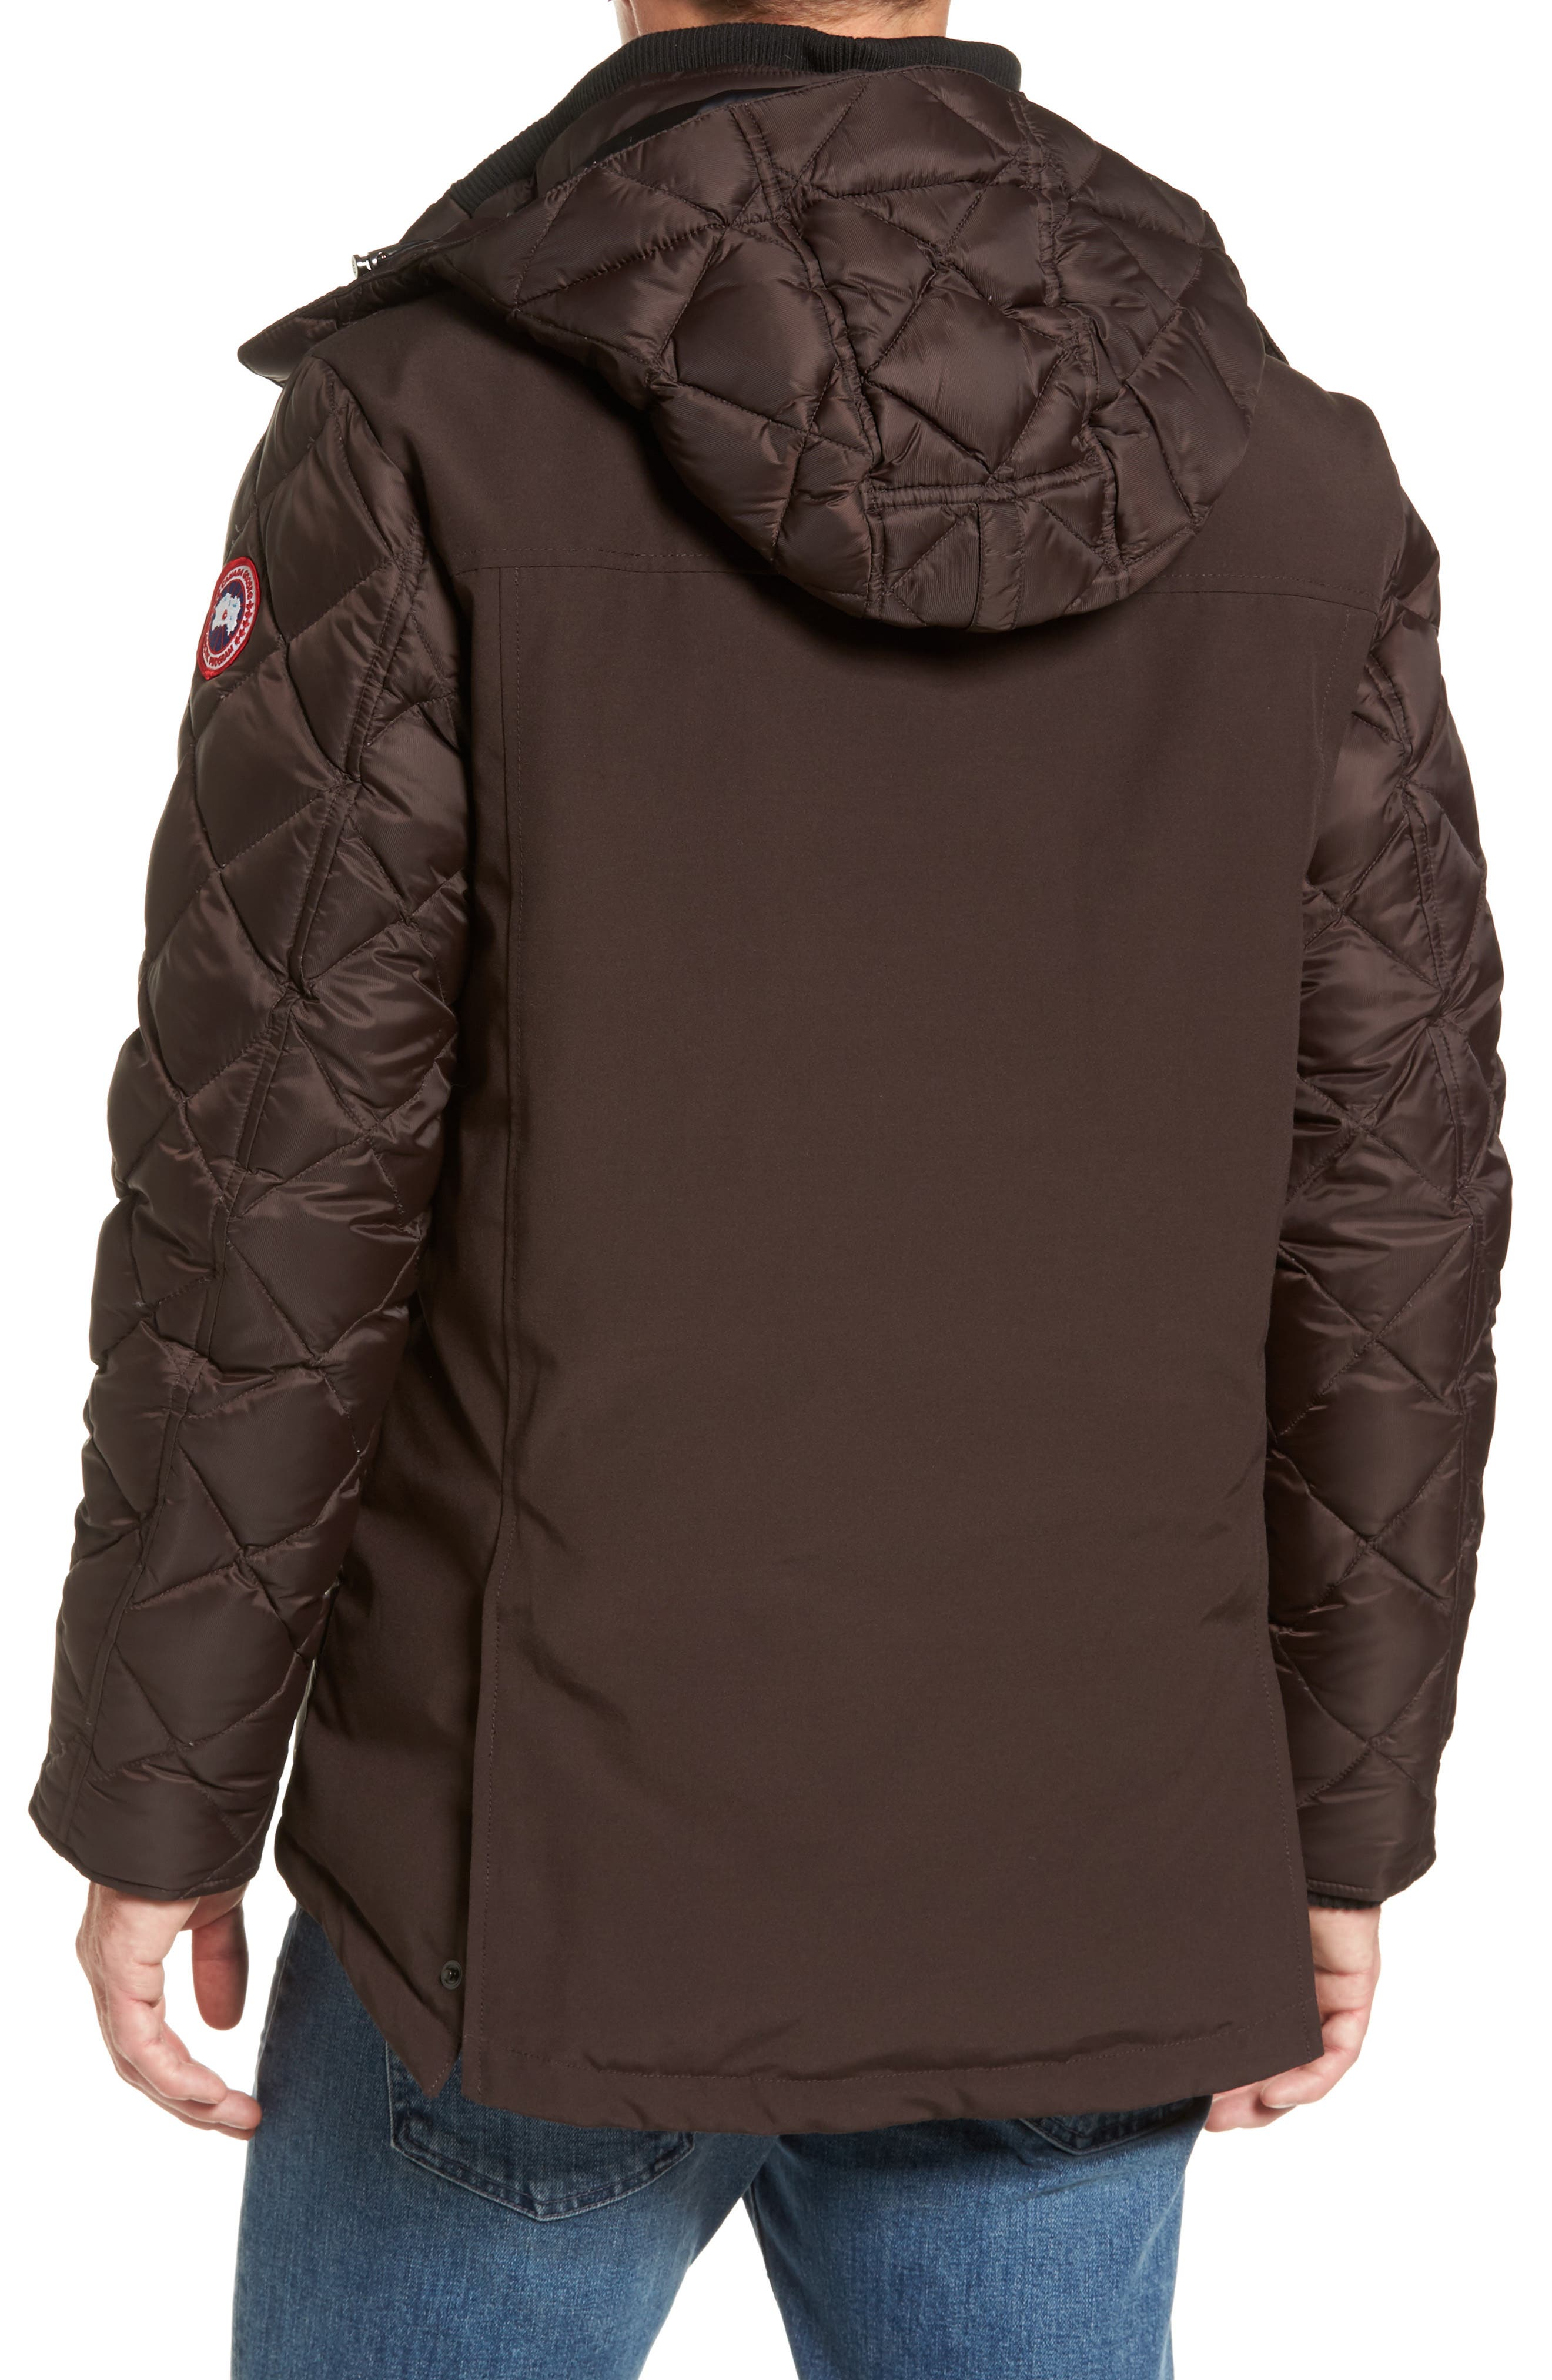 Hendriksen Quilted Down Coat,                             Alternate thumbnail 2, color,                             Charred Wood